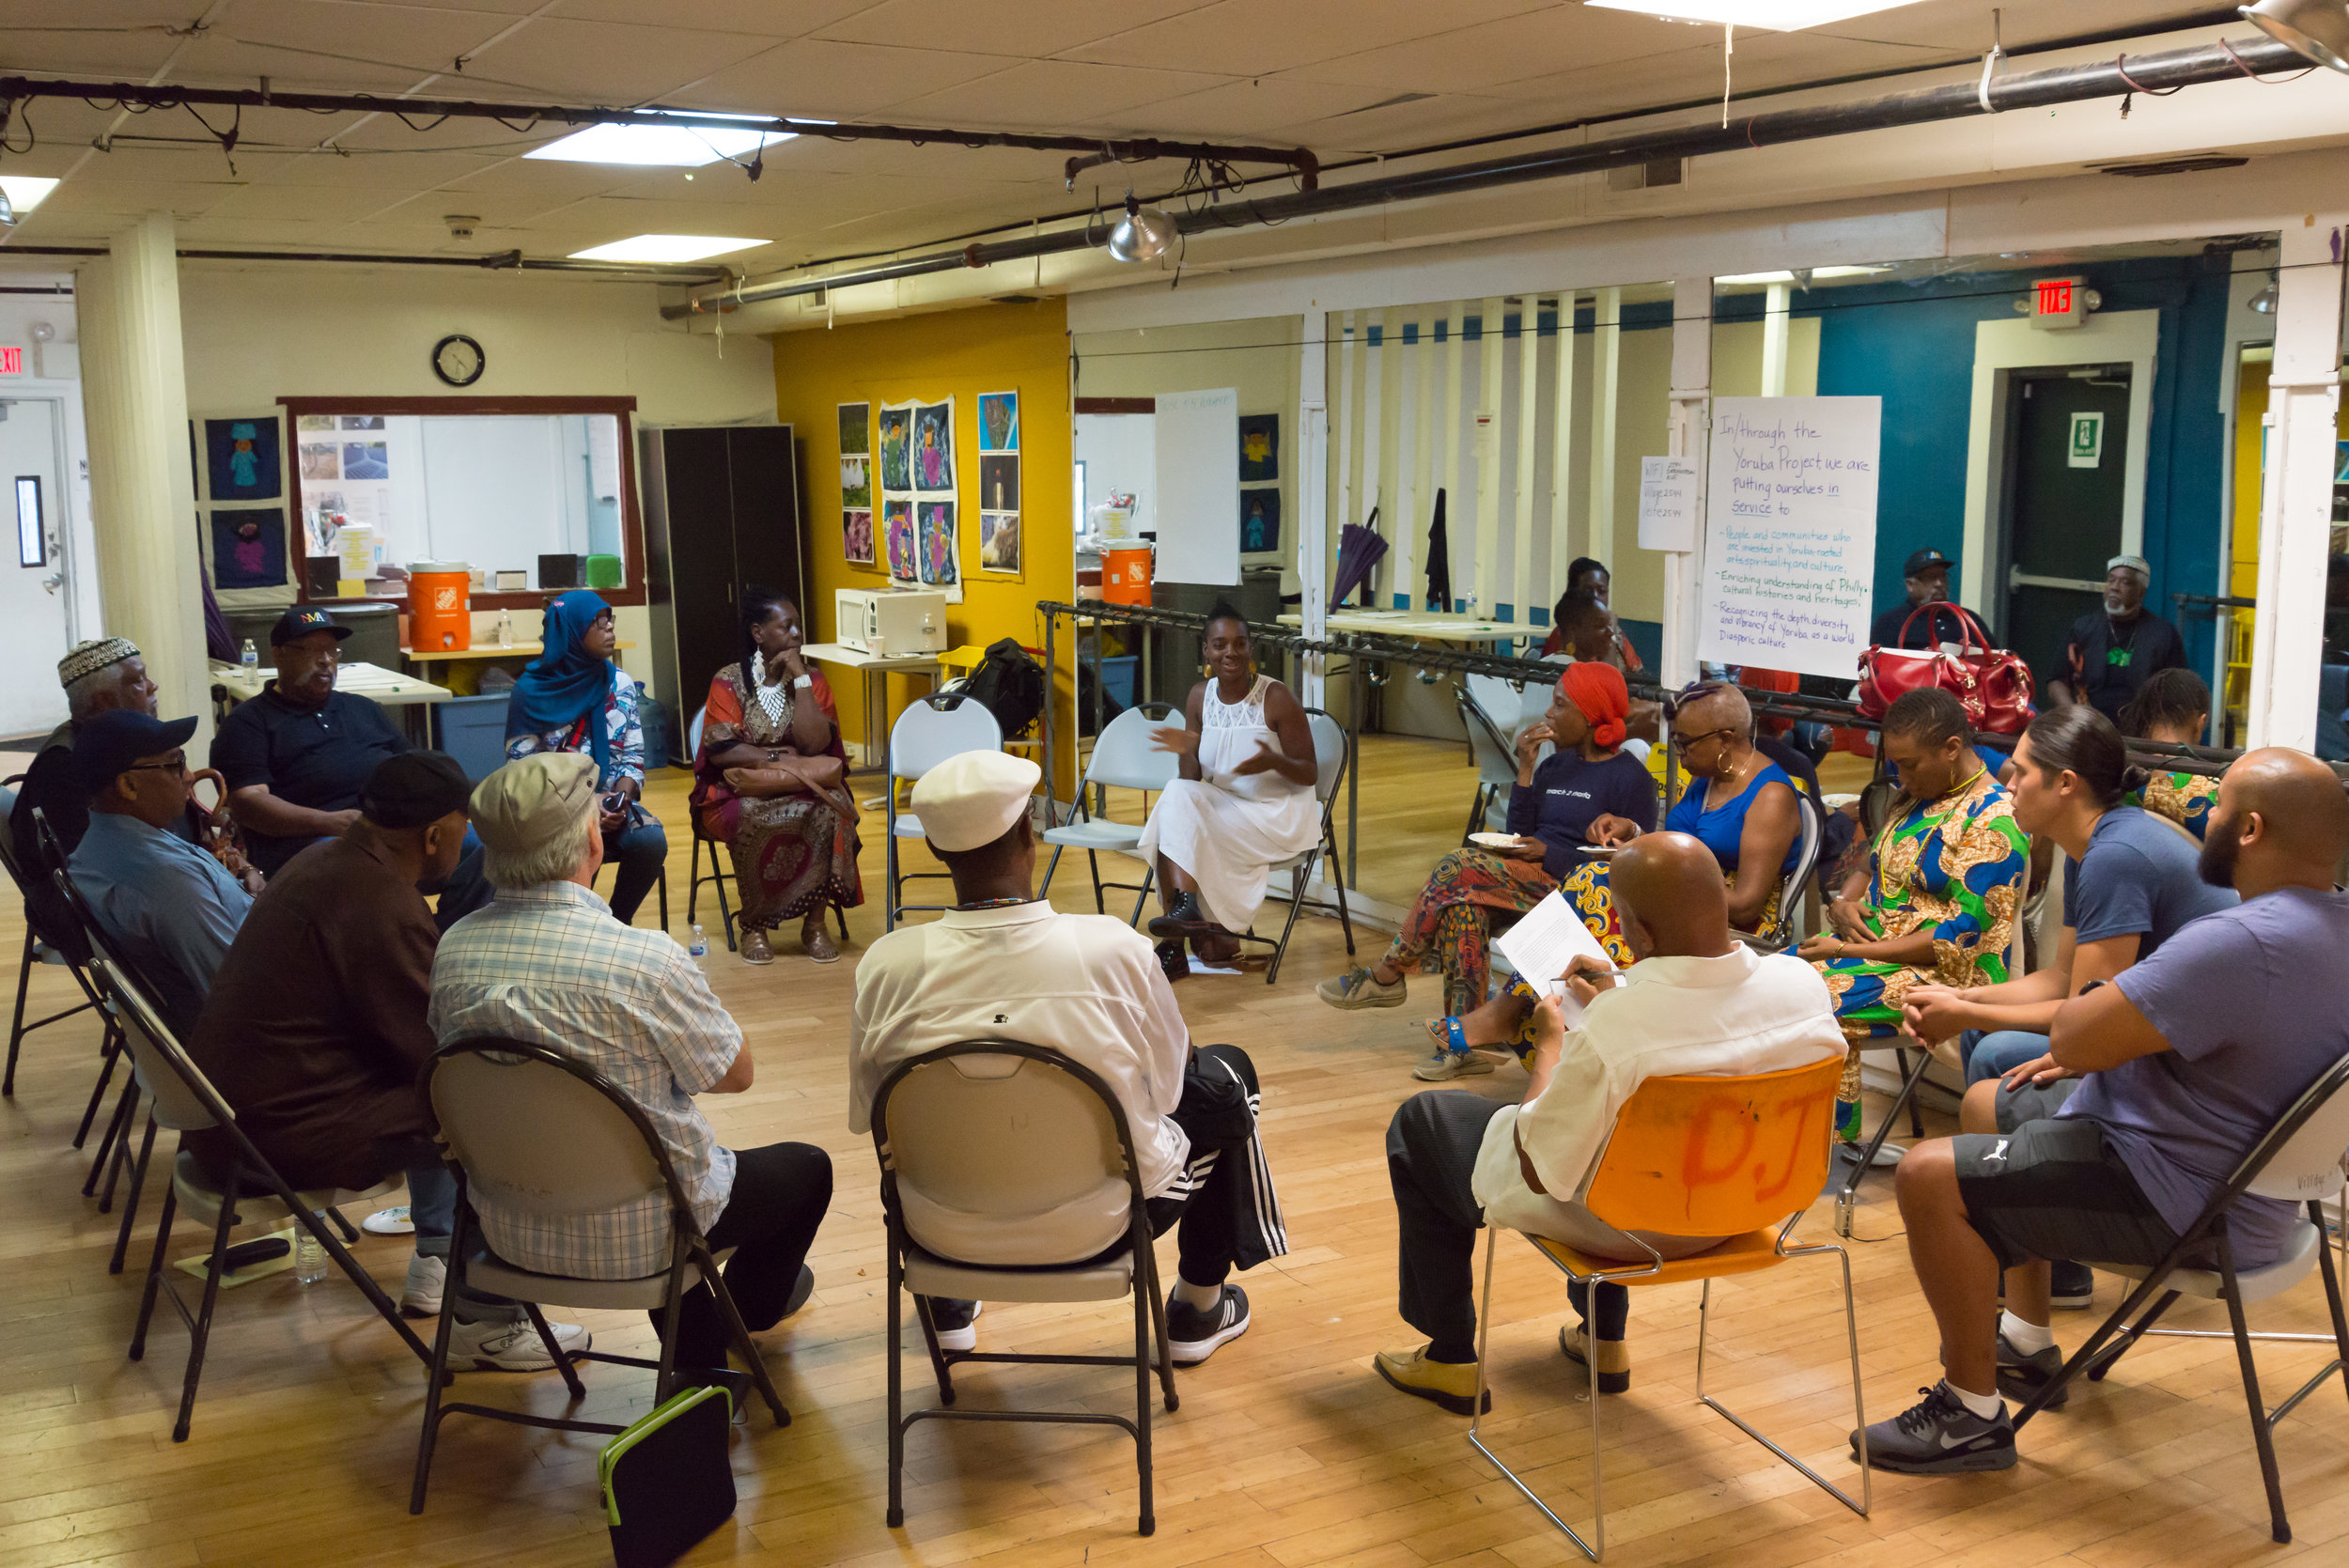 Story Circle underway at the Village of Arts and Humanities. Photo: Kat Kendon.